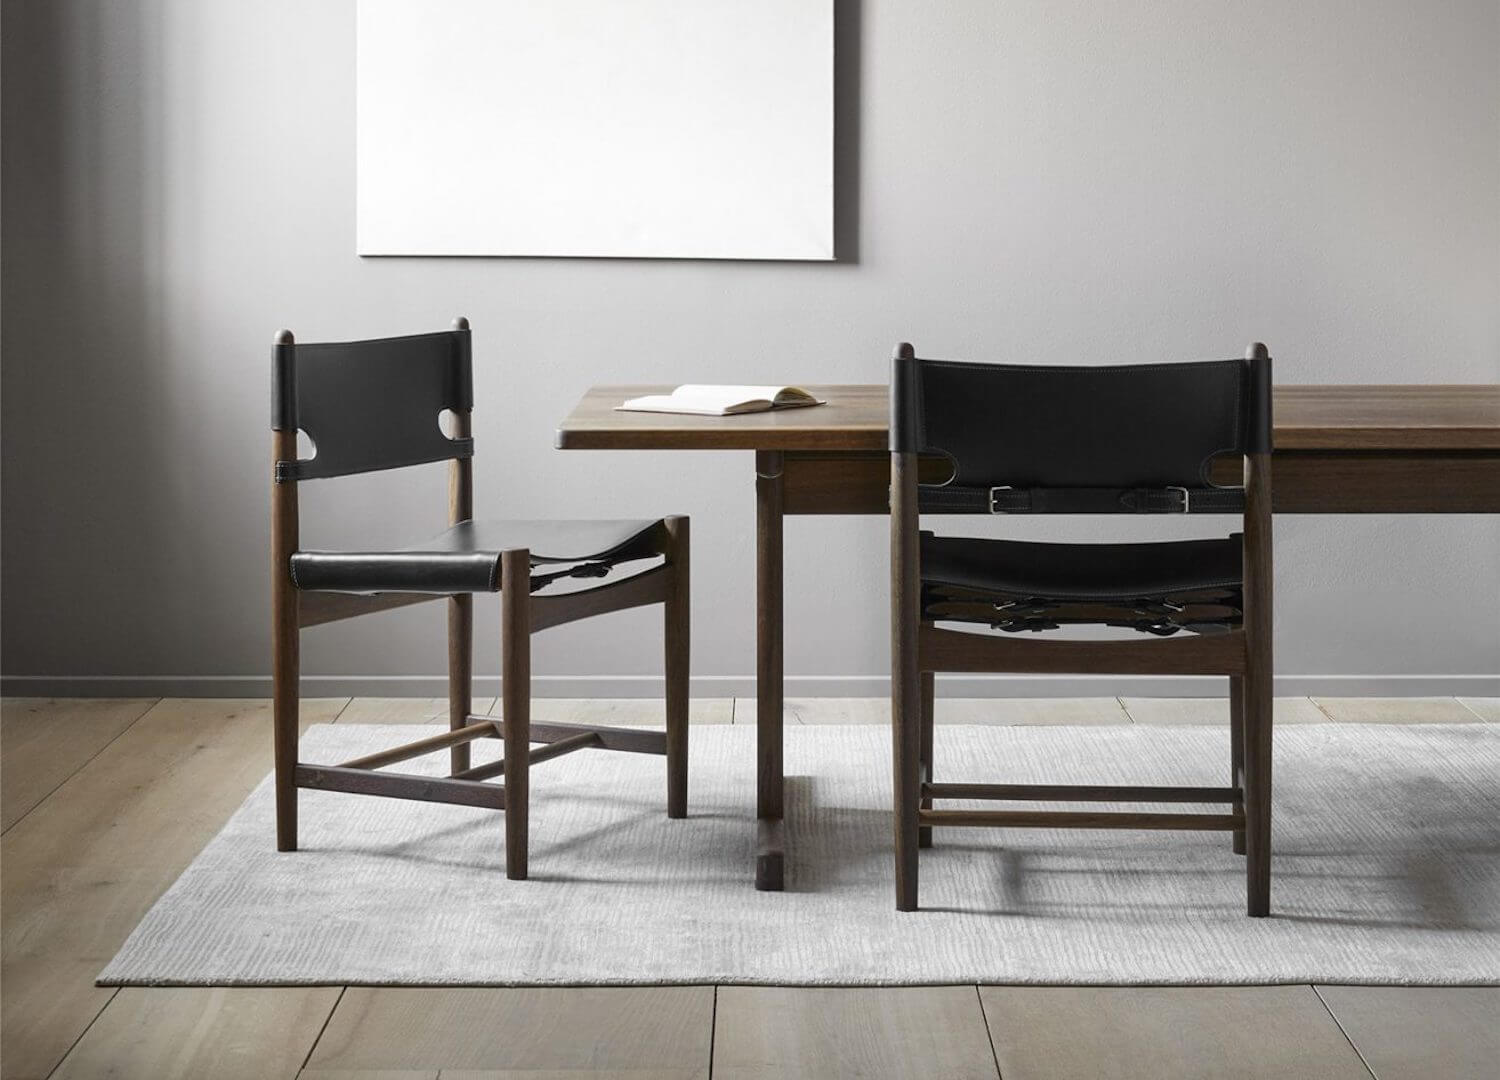 est living stockholm furniture fair spanish dining chair fredericia 2